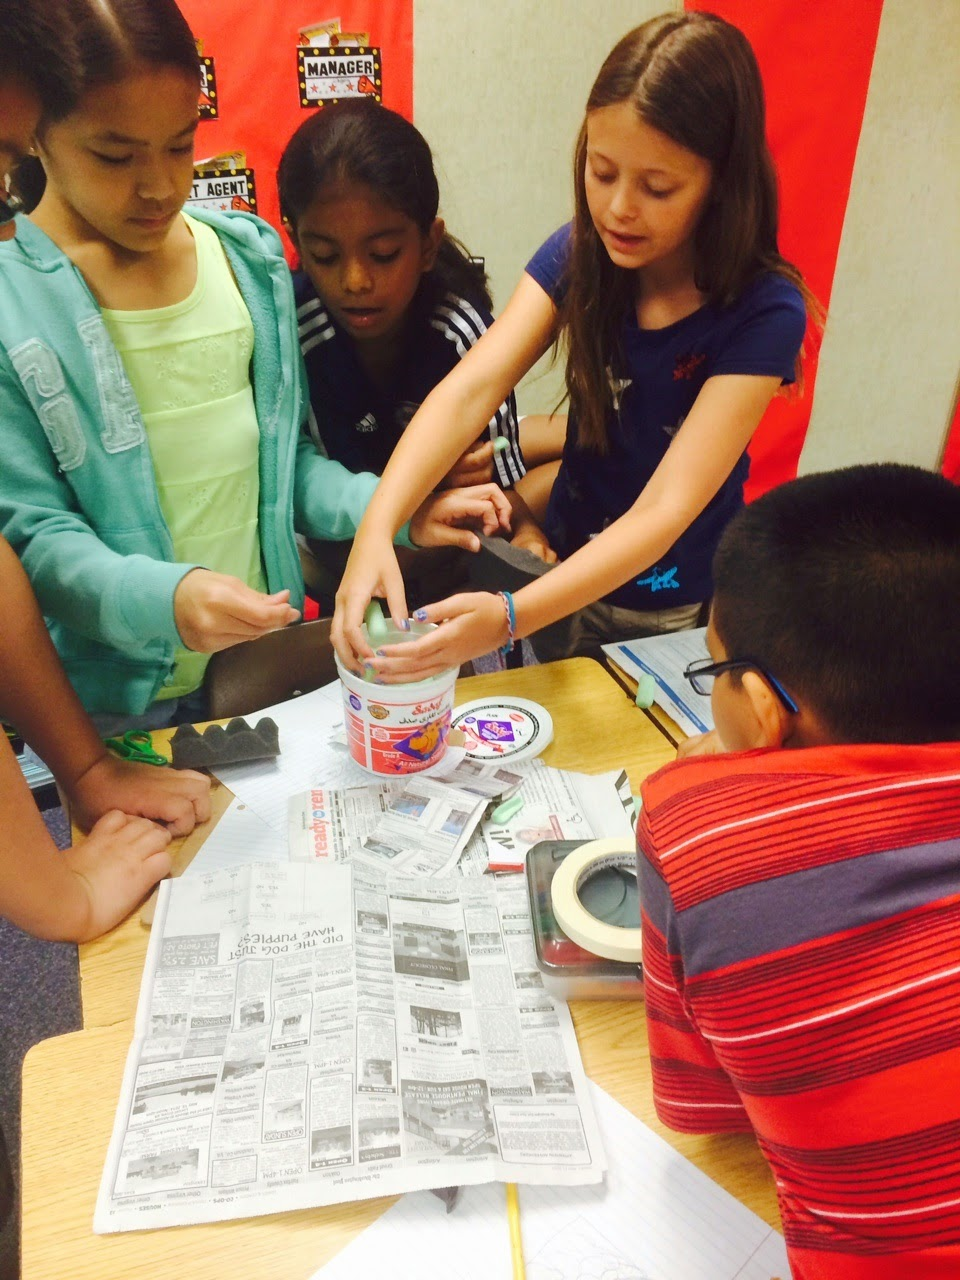 Incorporating STEM into your instruction isn't as challenging as it might seem. Our guest bloggers, who founded Get Caught Engineering, share several ways that STEM can be incorporated into English Language Arts in particular. There are some fun ideas shared, so check them out and add a comment with your thoughts on their suggestions!